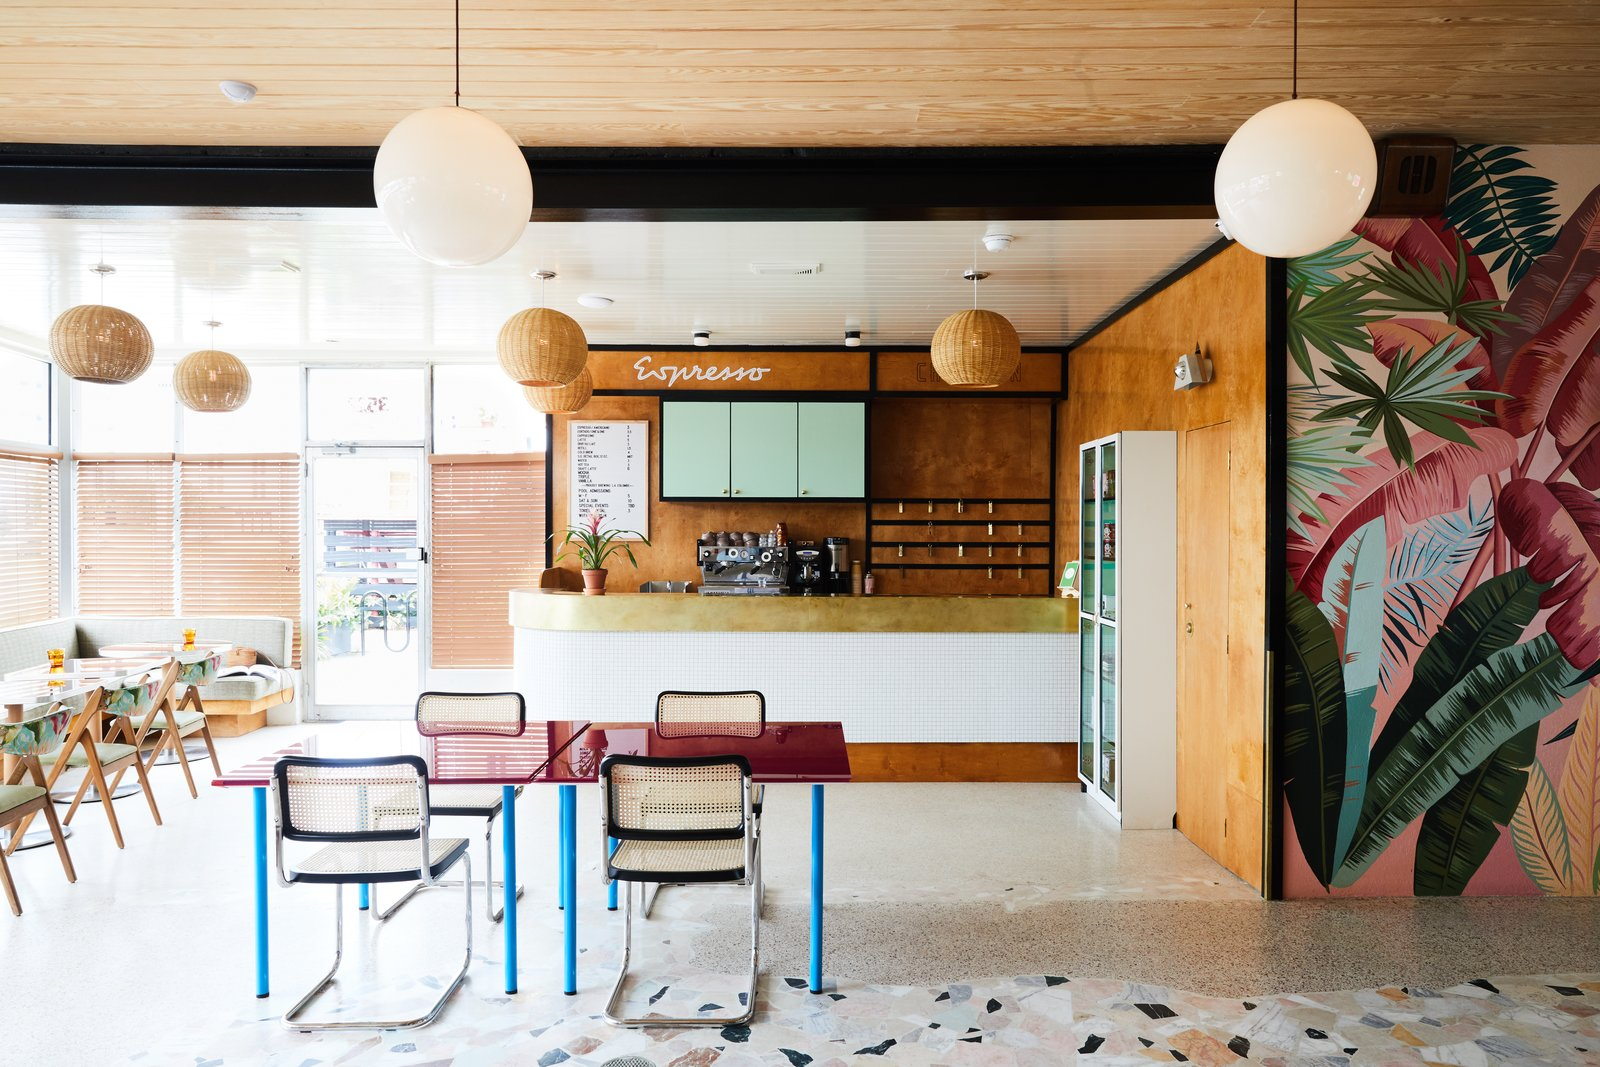 The Lobby Reception space is adorned with mid-century modern pendant lighting, tropical wall graphics,  and color furnishings. Tagged: Dining Room, Chair, Table, Bar, Pendant Lighting, Bench, Terrazzo Floor, and Ceiling Lighting.  Best Photos from This Revived New Orleans Motel Has Some Serious Flair